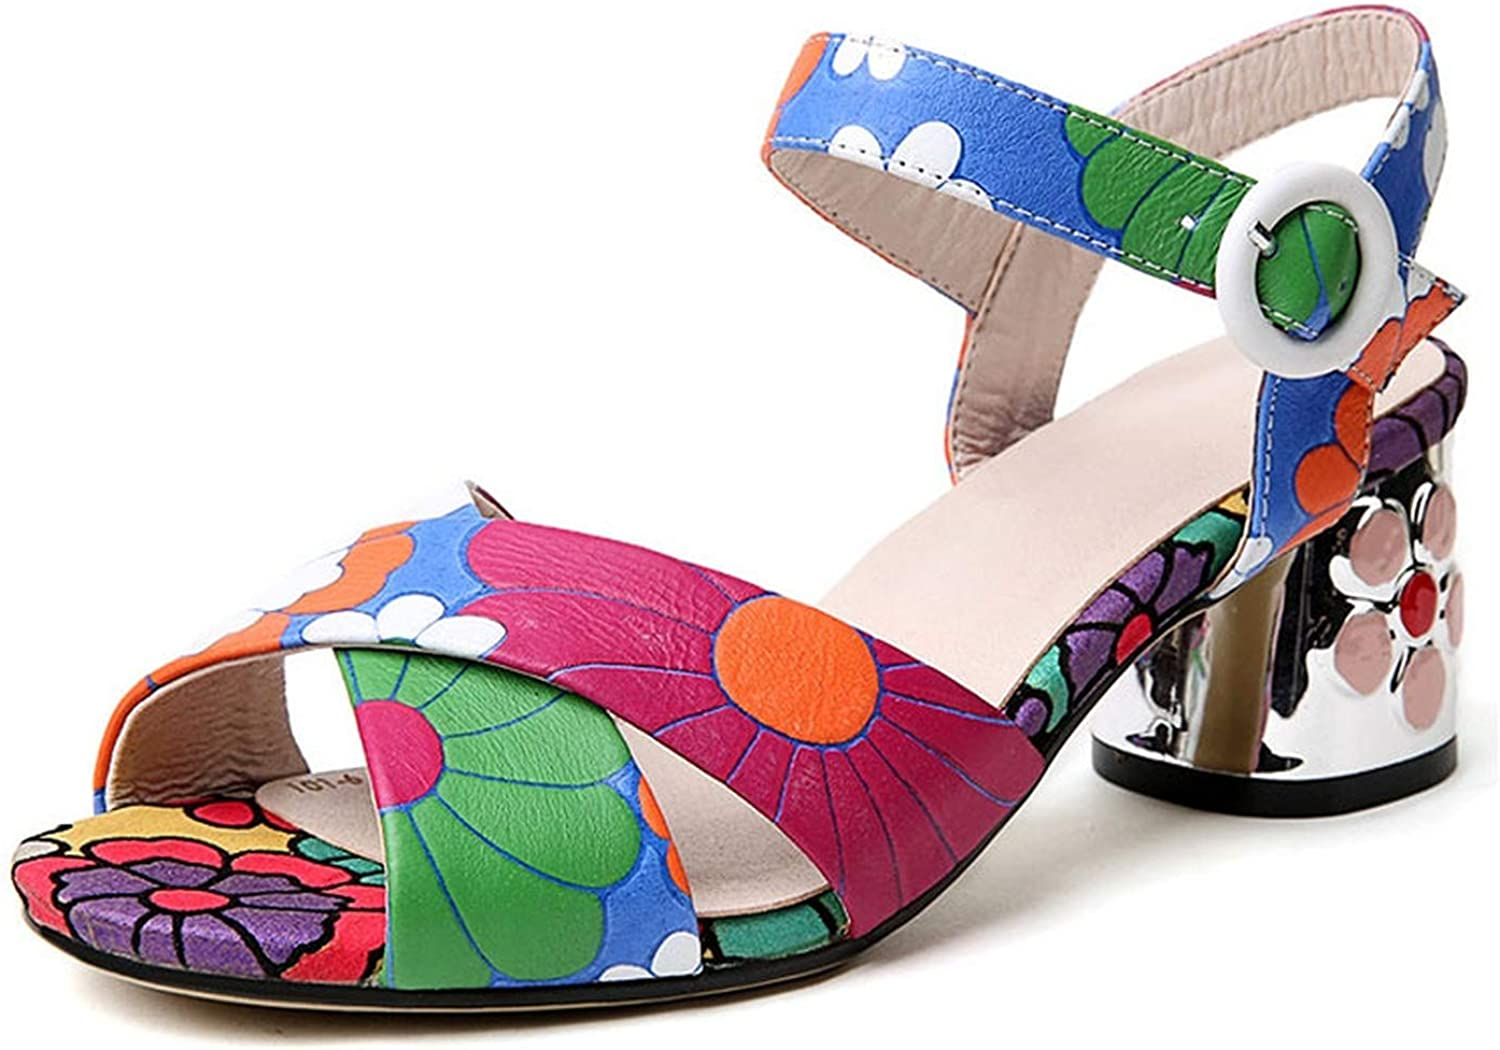 Women's High Heels shoes Prints Cross-Tied Sandals Ladies Ankle Strappy Heels 5.5 cm Fashion shoes